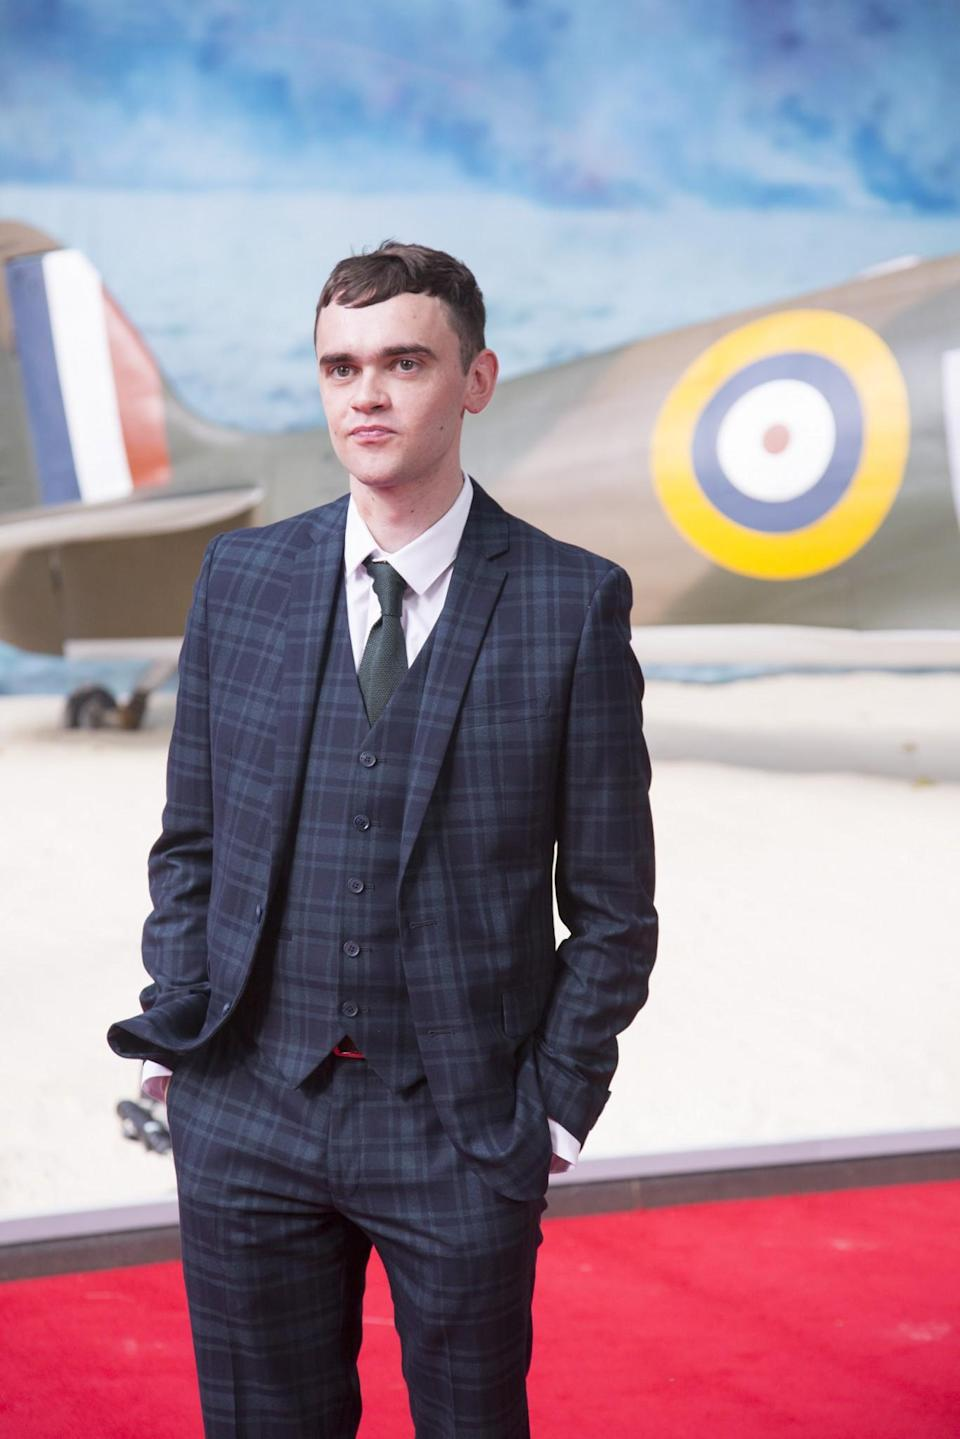 <p>Brian Vernel, who played Bala-Tik in 'Star Wars: The Force Awakens' plays a Highlander soldier in 'Dunkirk' (WB) </p>